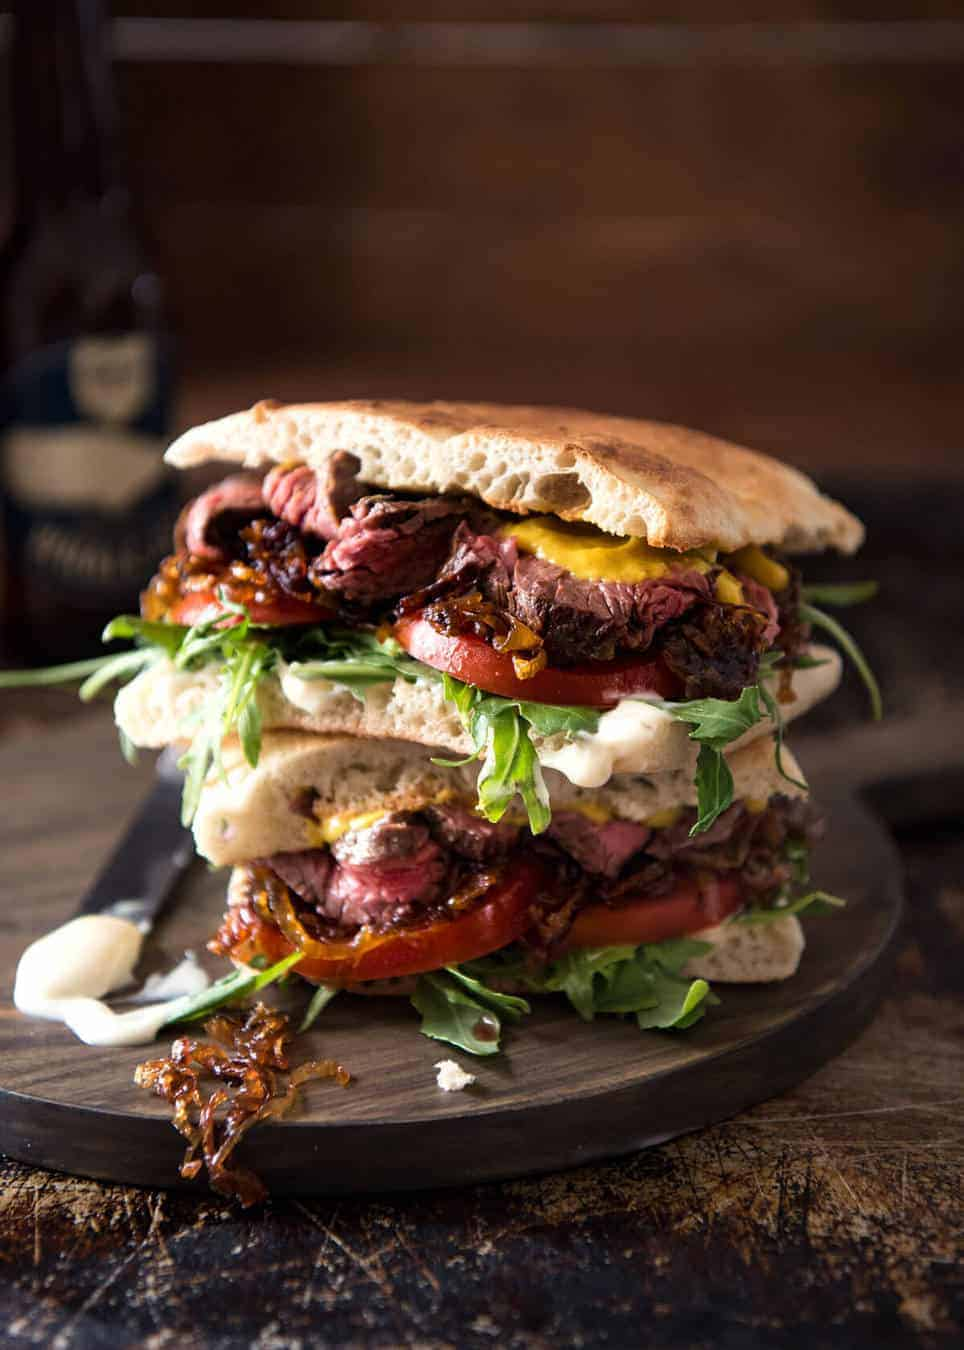 A juicy Steak Sandwich loaded with tender slices of steak, caramelised onion, garlic aioli, lettuce, tomato and mustard. www.recipetineats.com